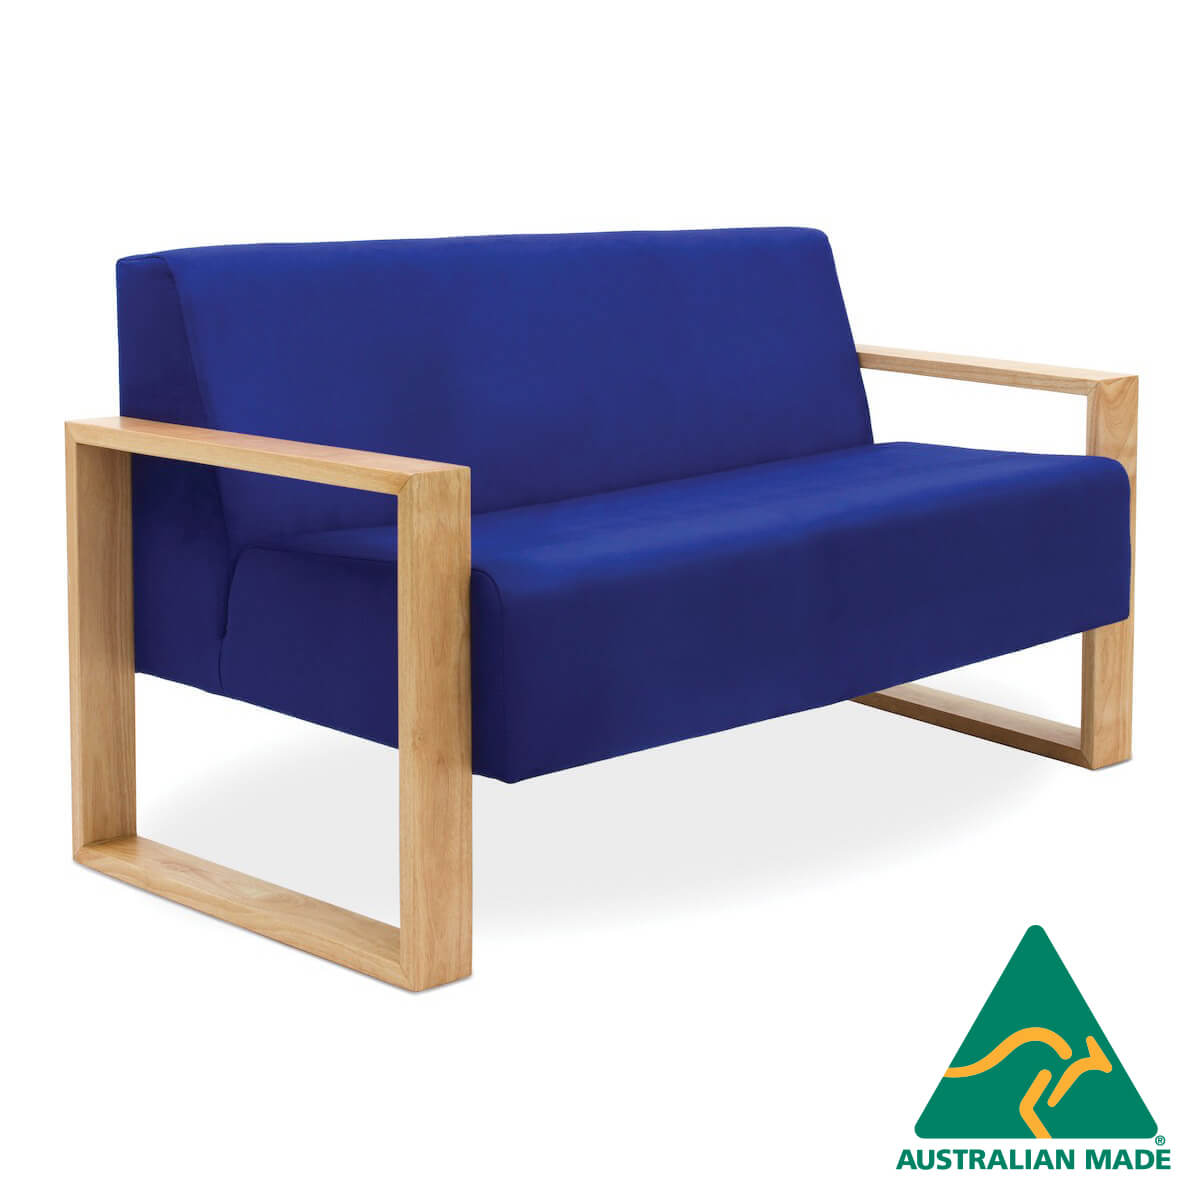 malibu double seater blu upholstery timber frame